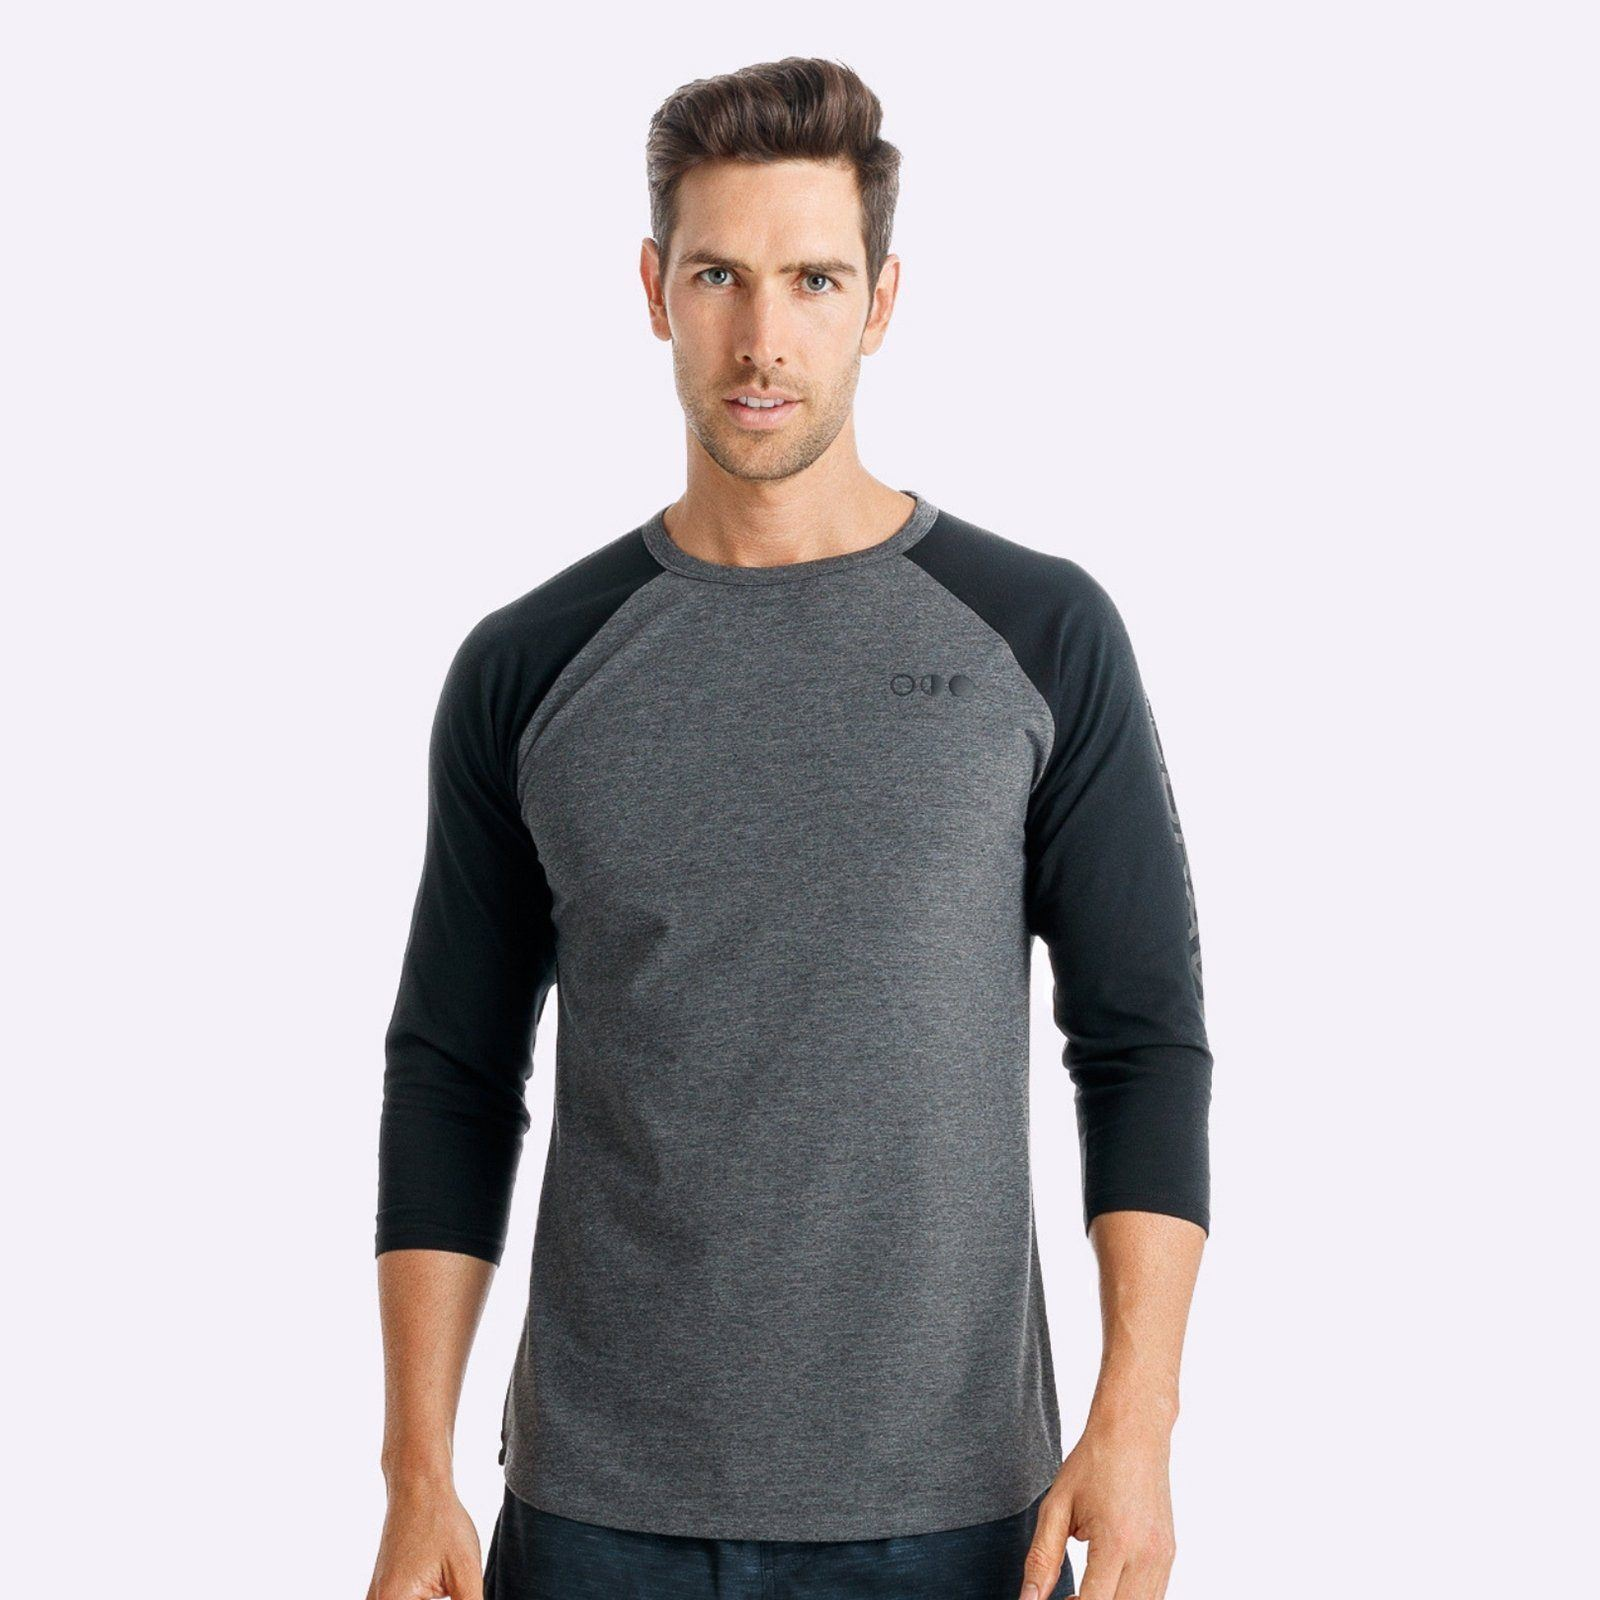 The Brave - Adventure Raglan Shirt - Charcoal Marle/Black/Black